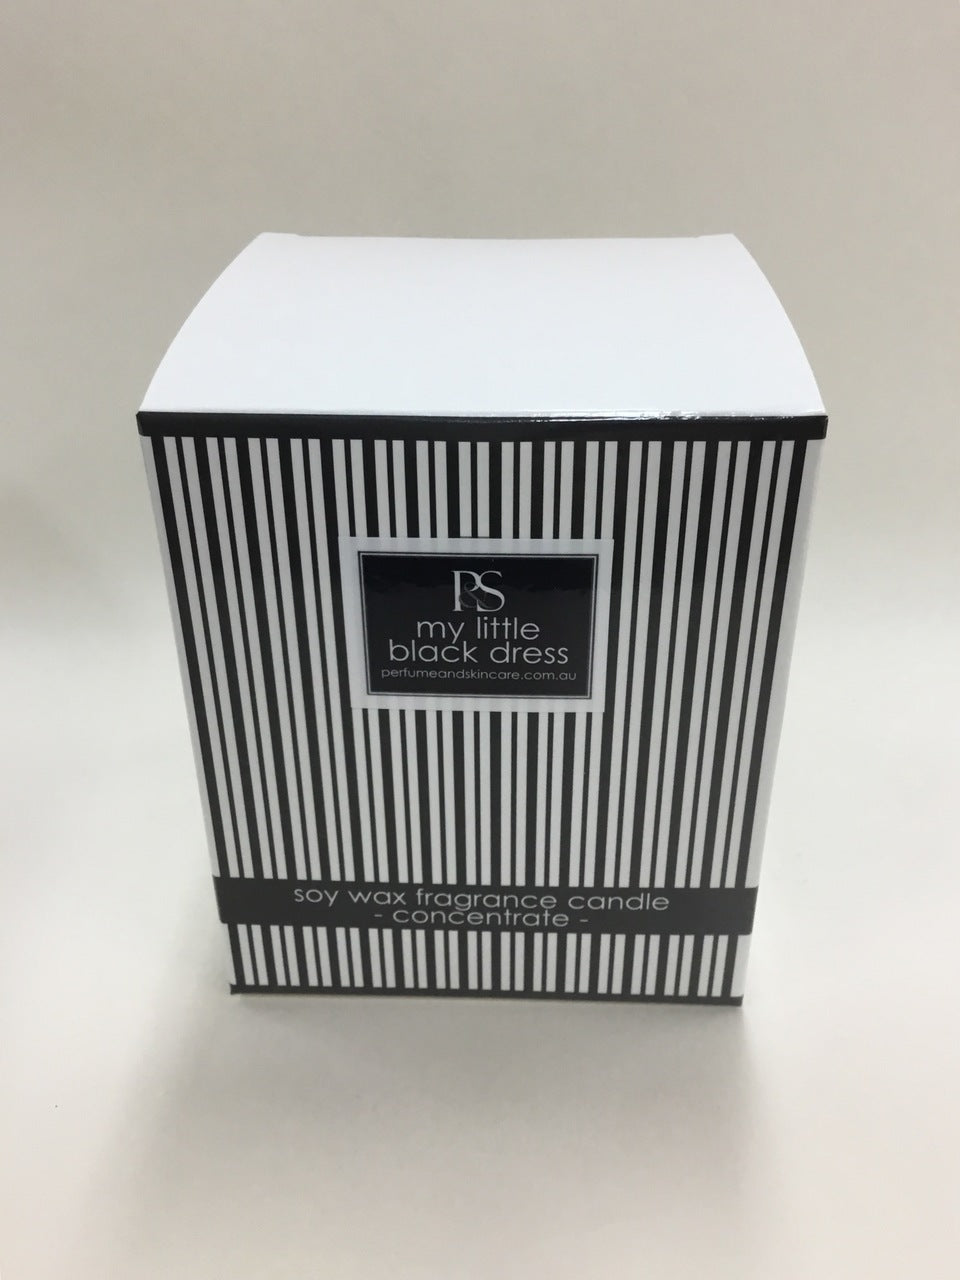 My Little Black Dress Pure Soy Wax Candle - 200 gm